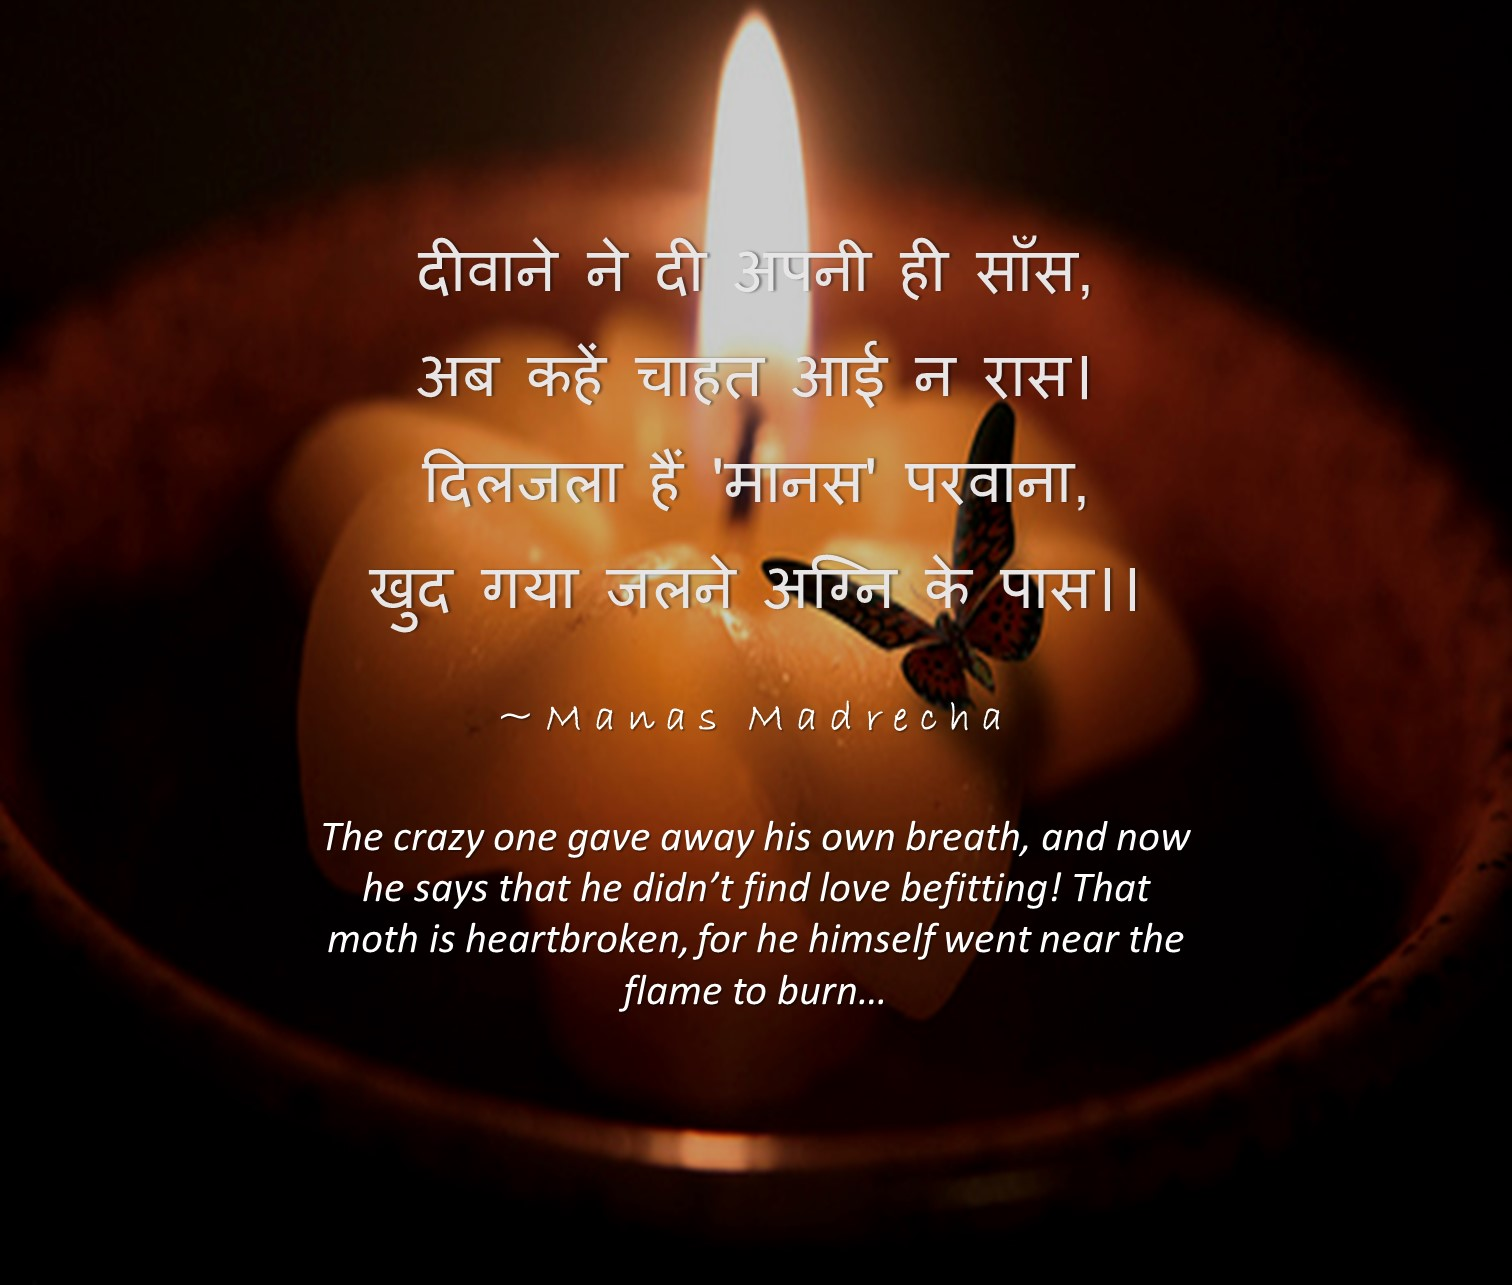 poem on love, Manas Madrecha, Manas Madrecha poems, poems by Manas Madrecha, Manas Madrecha quotes, love quotes, quotes on love, Manas Madrecha blog, simplifying universe, teenage quotes, teenage poem, youth poem, youth quotes, quotes on youth, romantic poem, burning lamp, burning diya, burning candle, moth and the flame, moth candle